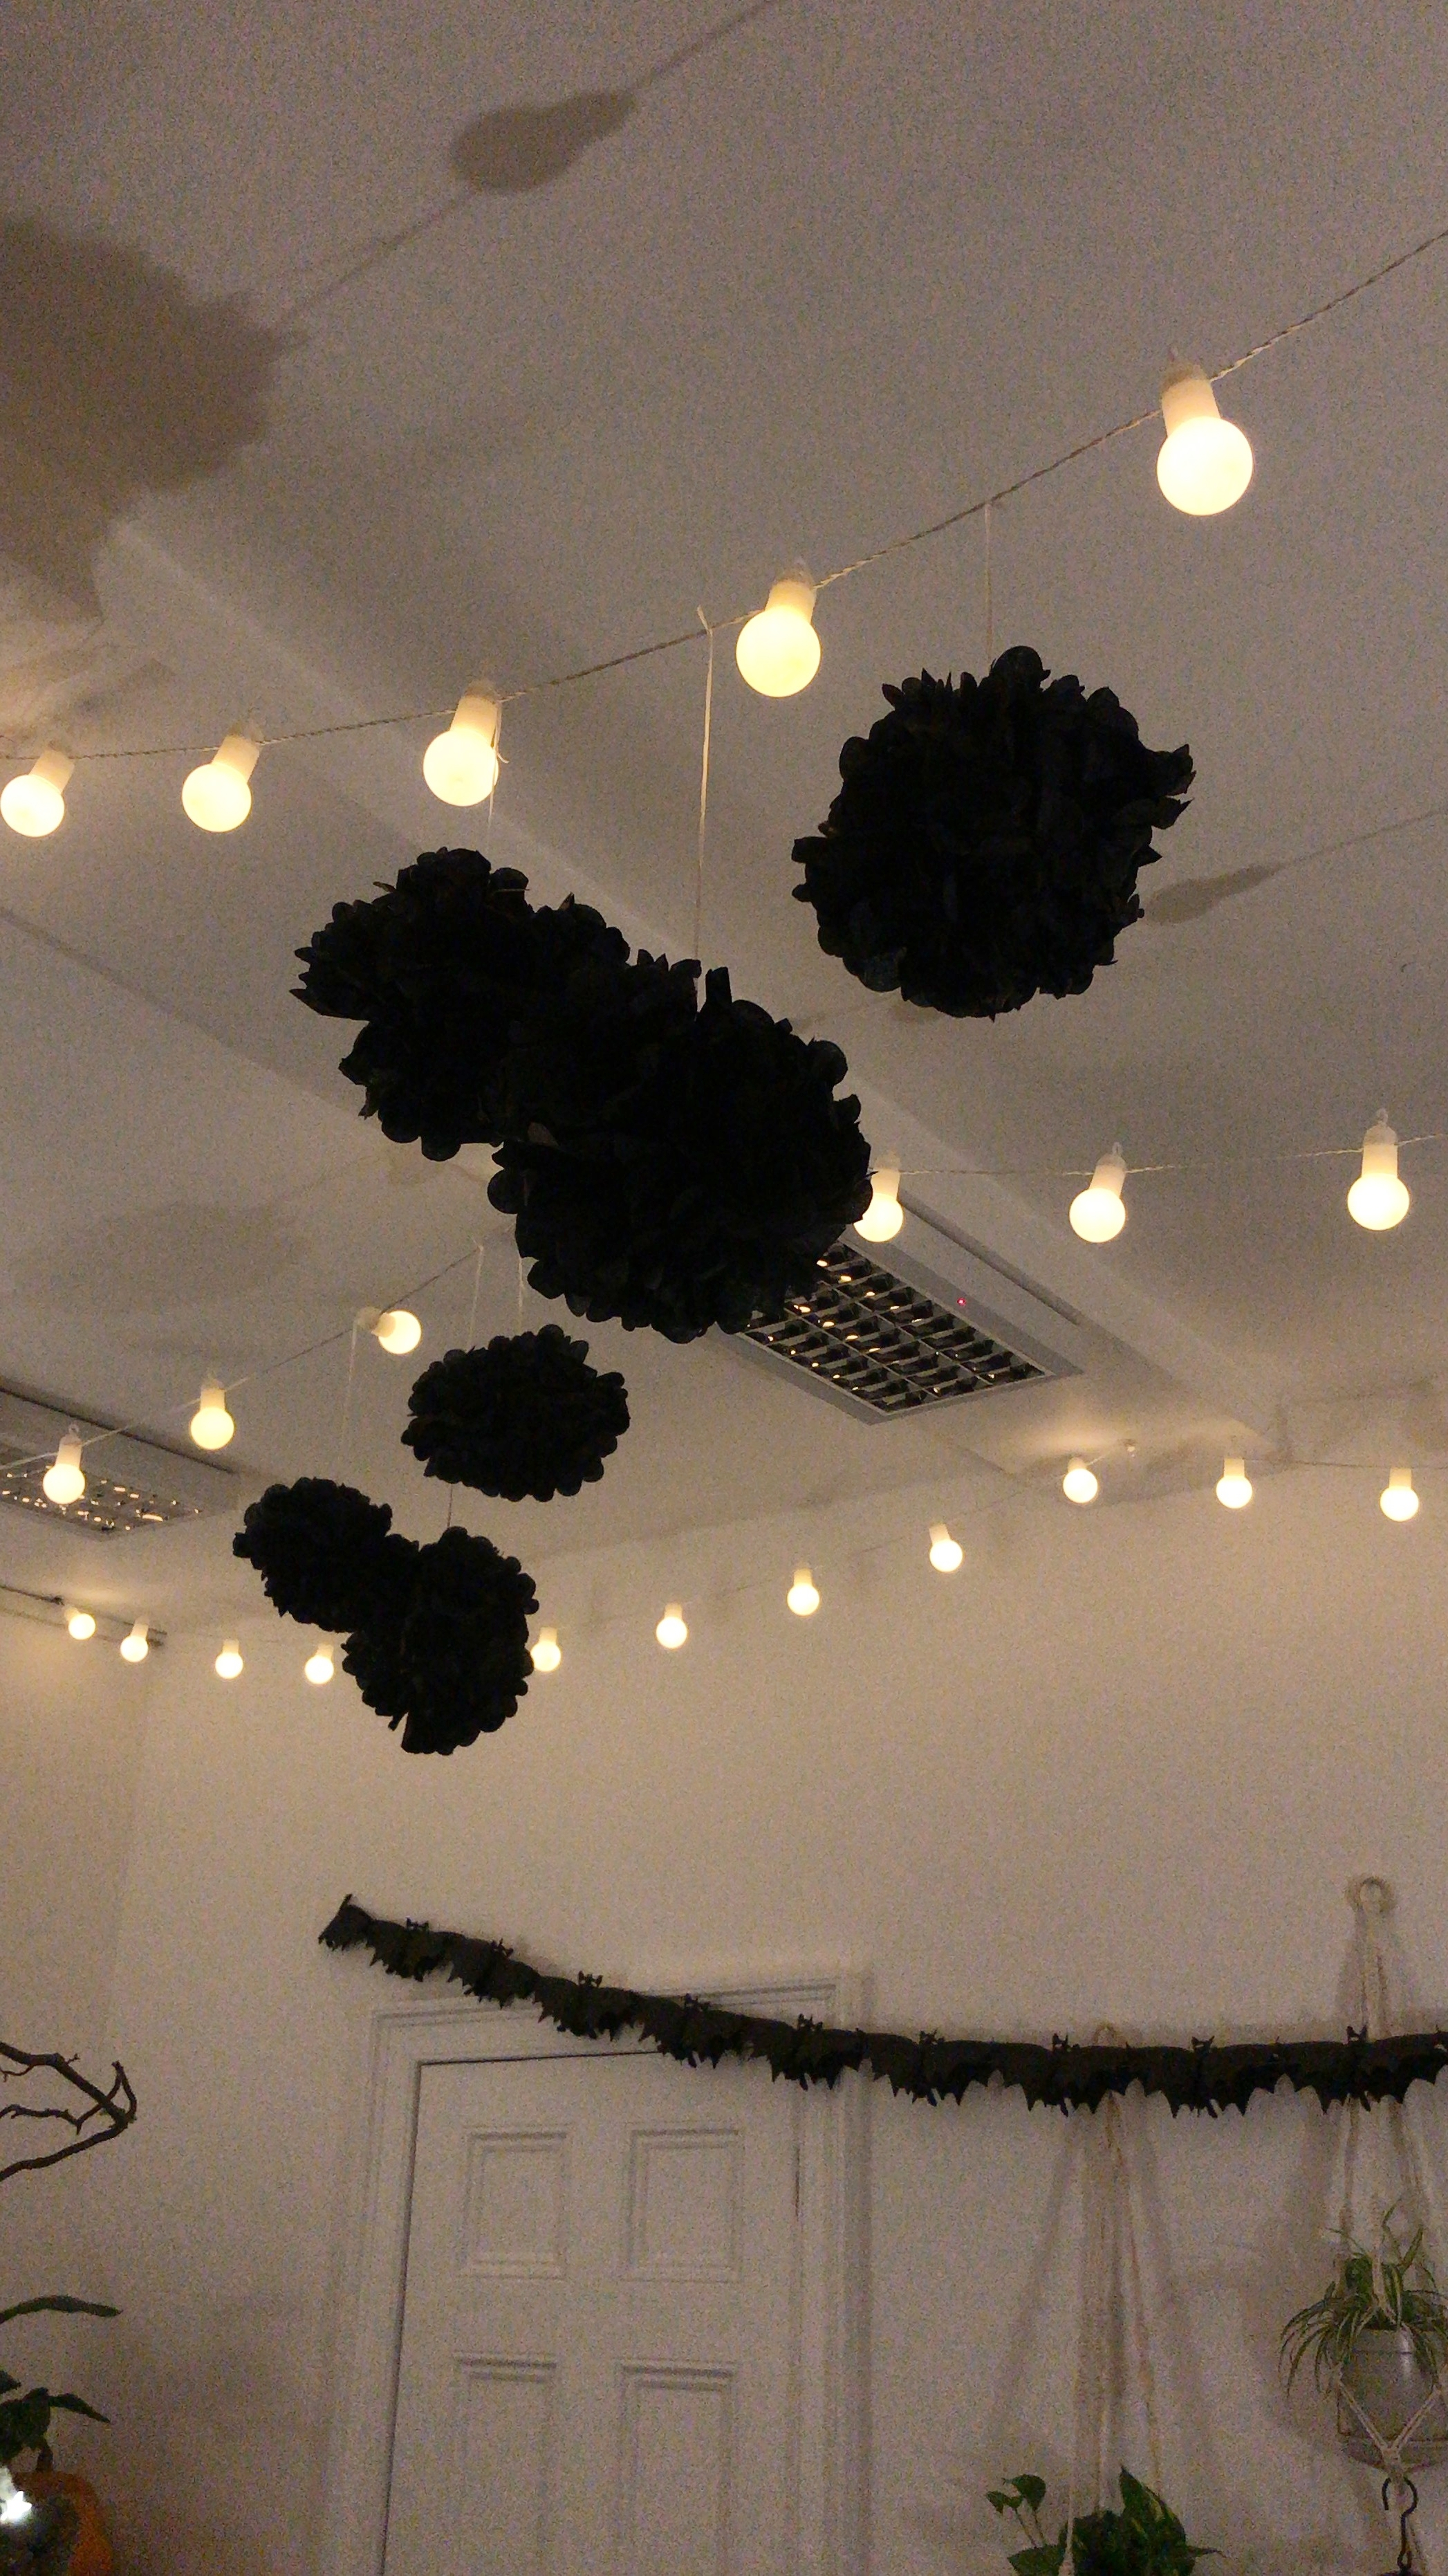 Loved all the hanging decorations in the LCC space. Especially loved those bulb string lights.